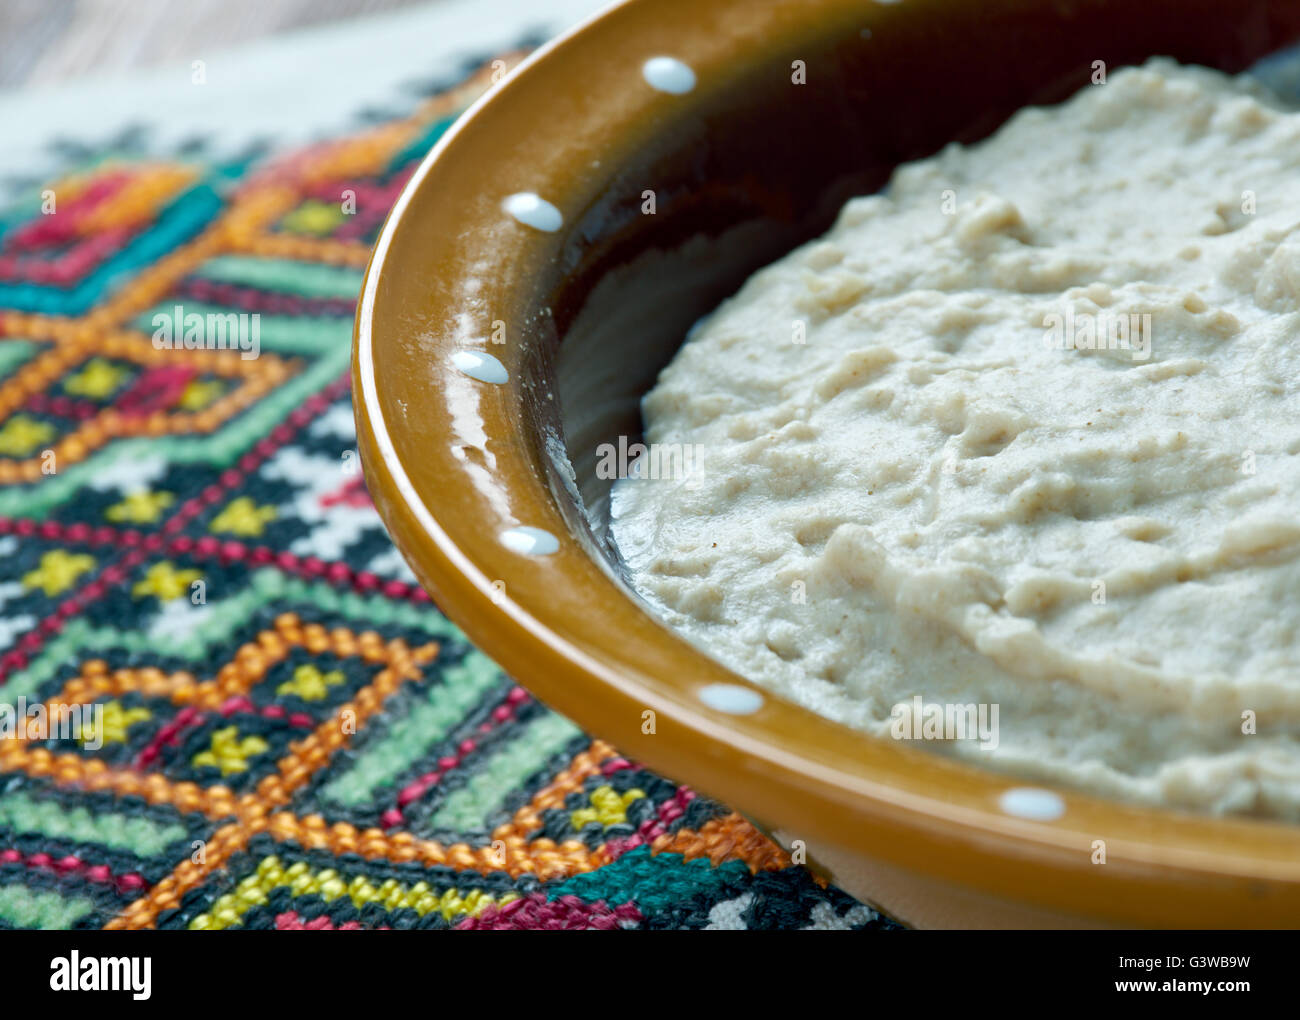 dezhen - Russian dish of oatmeal and spoiled milk - Stock Image